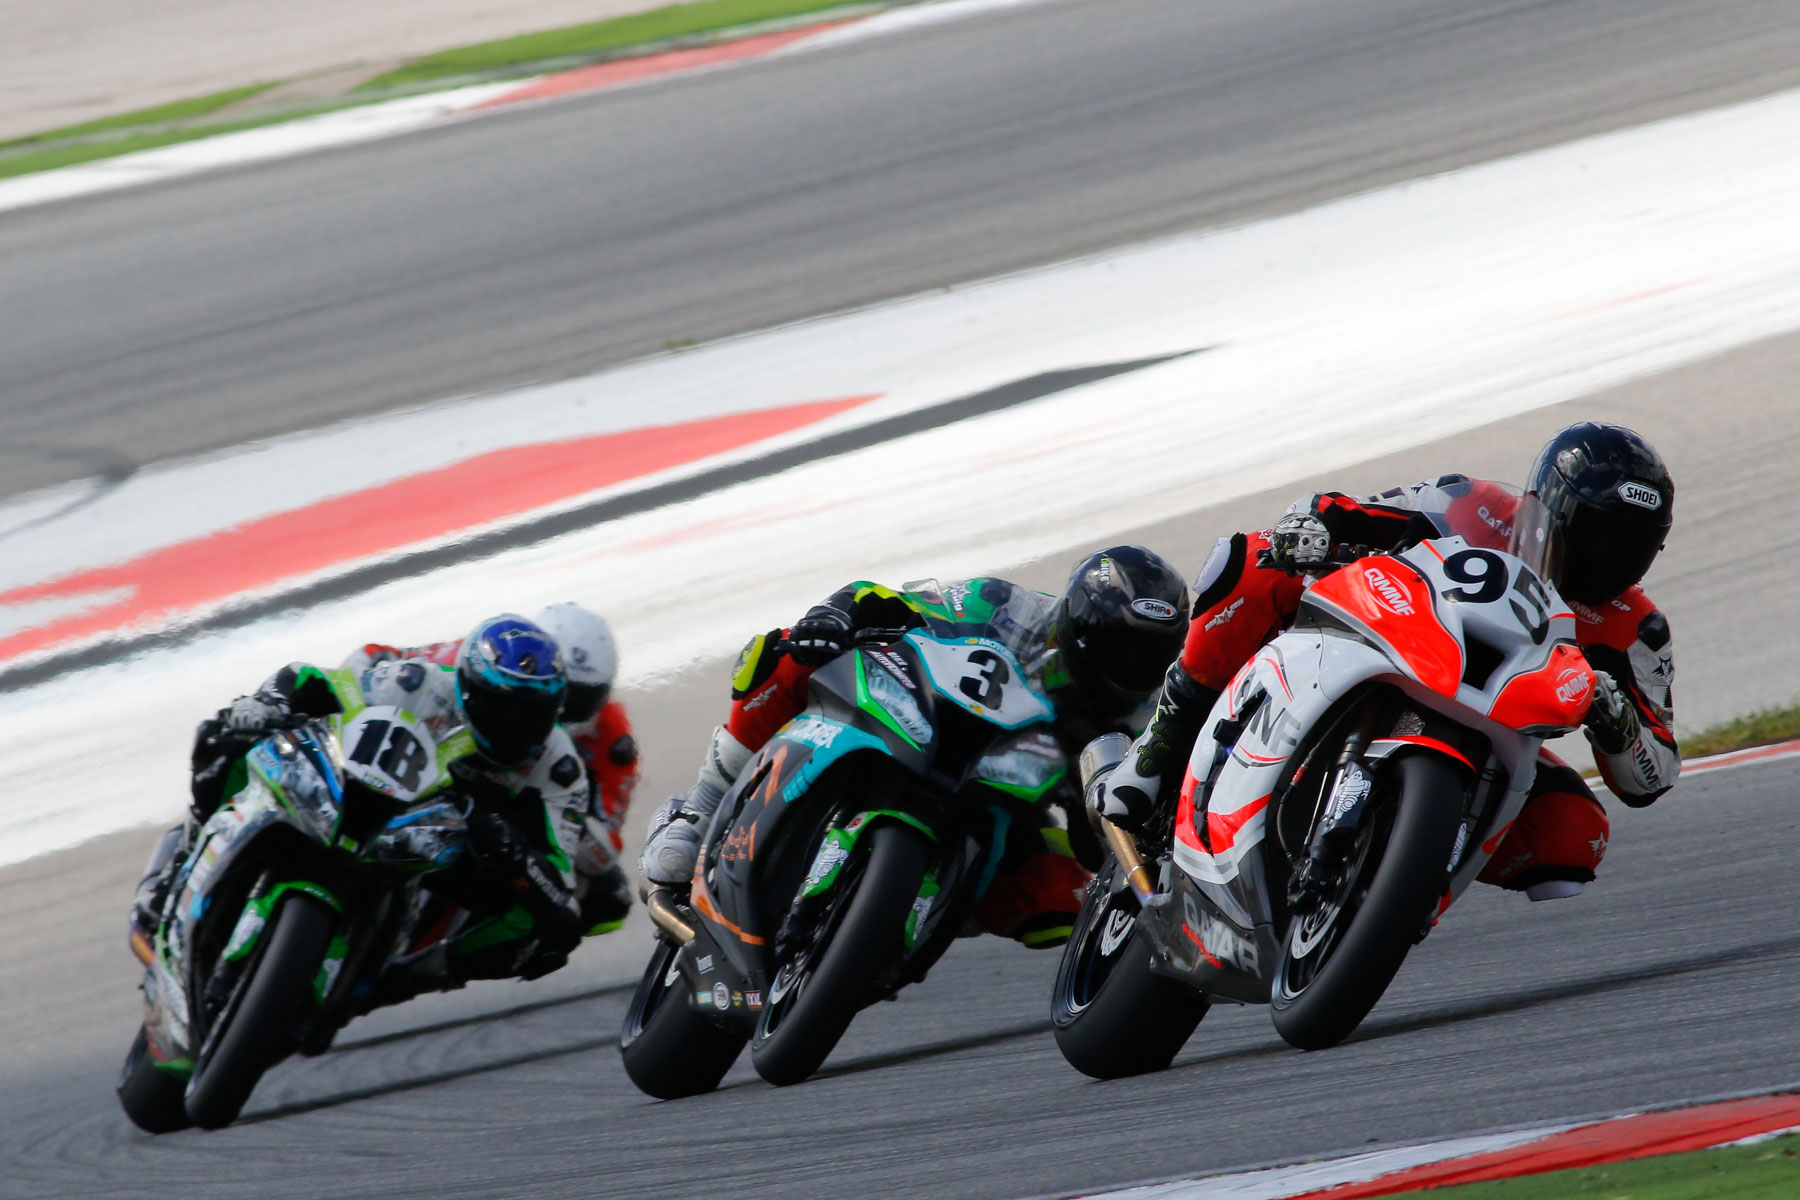 Bikes: Team QMMF rider Saeed Al Sulaiti in the points after opening round of Euro Superbike Championship